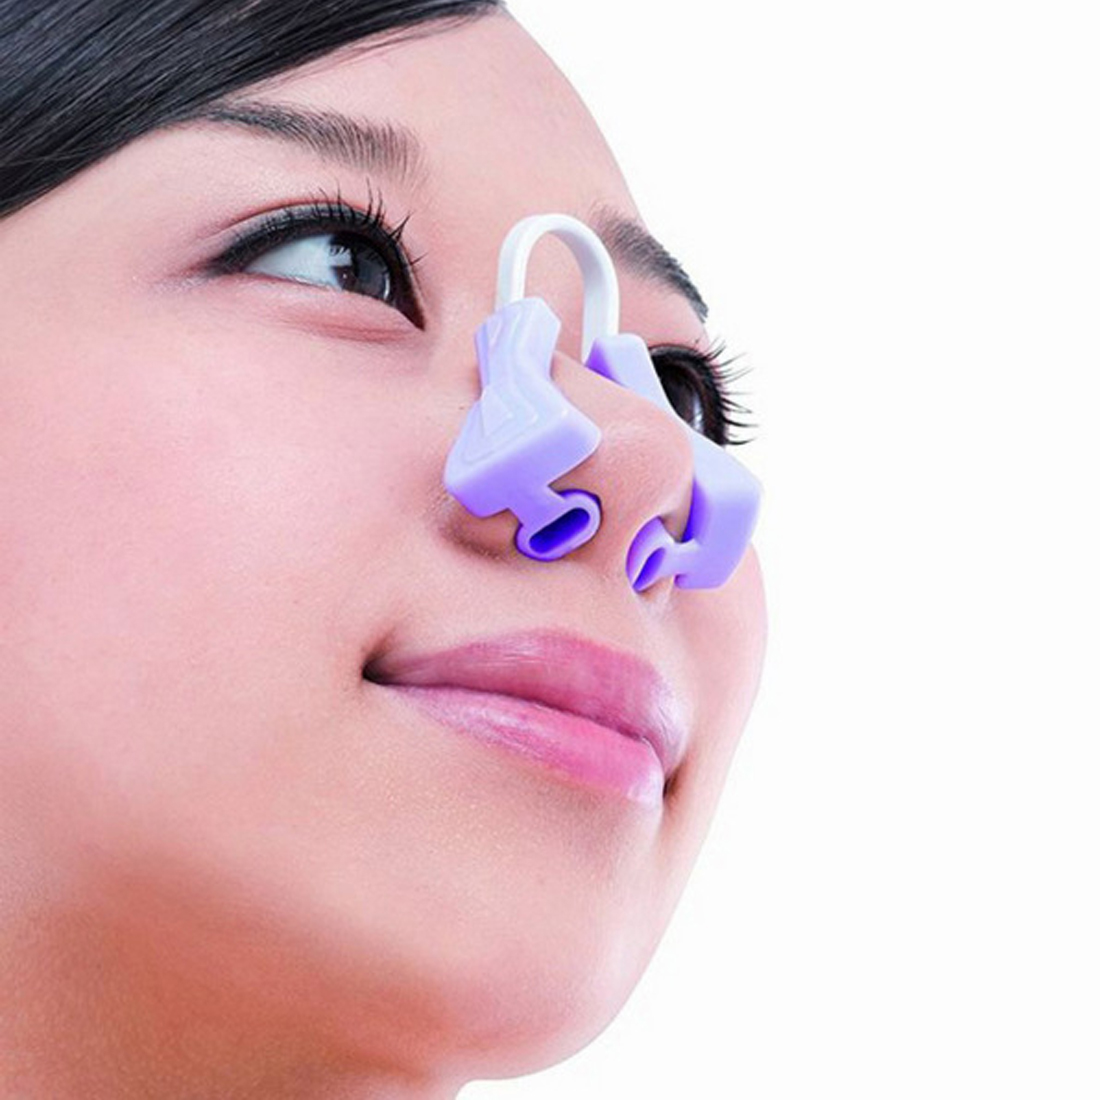 Breathing Exercising/ Straightening Beauty Nose Clip Corrector/Nose Up Shaping Shaper Clip Clipper/ Makeup Facial Care Tool